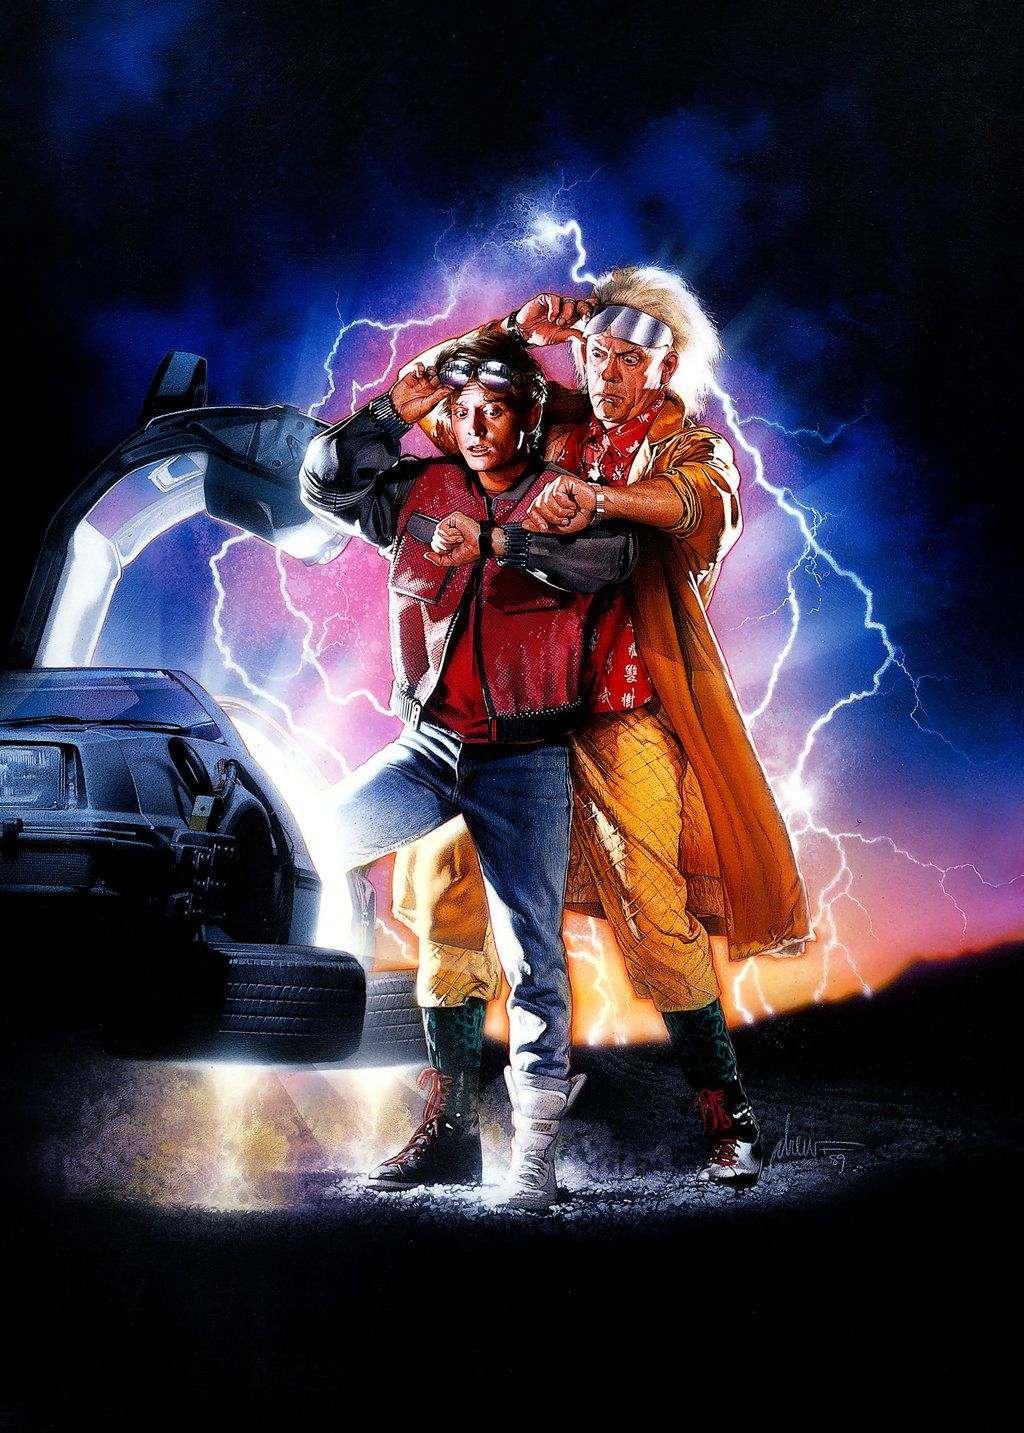 Back to the future 2 hires textless poster by phet van